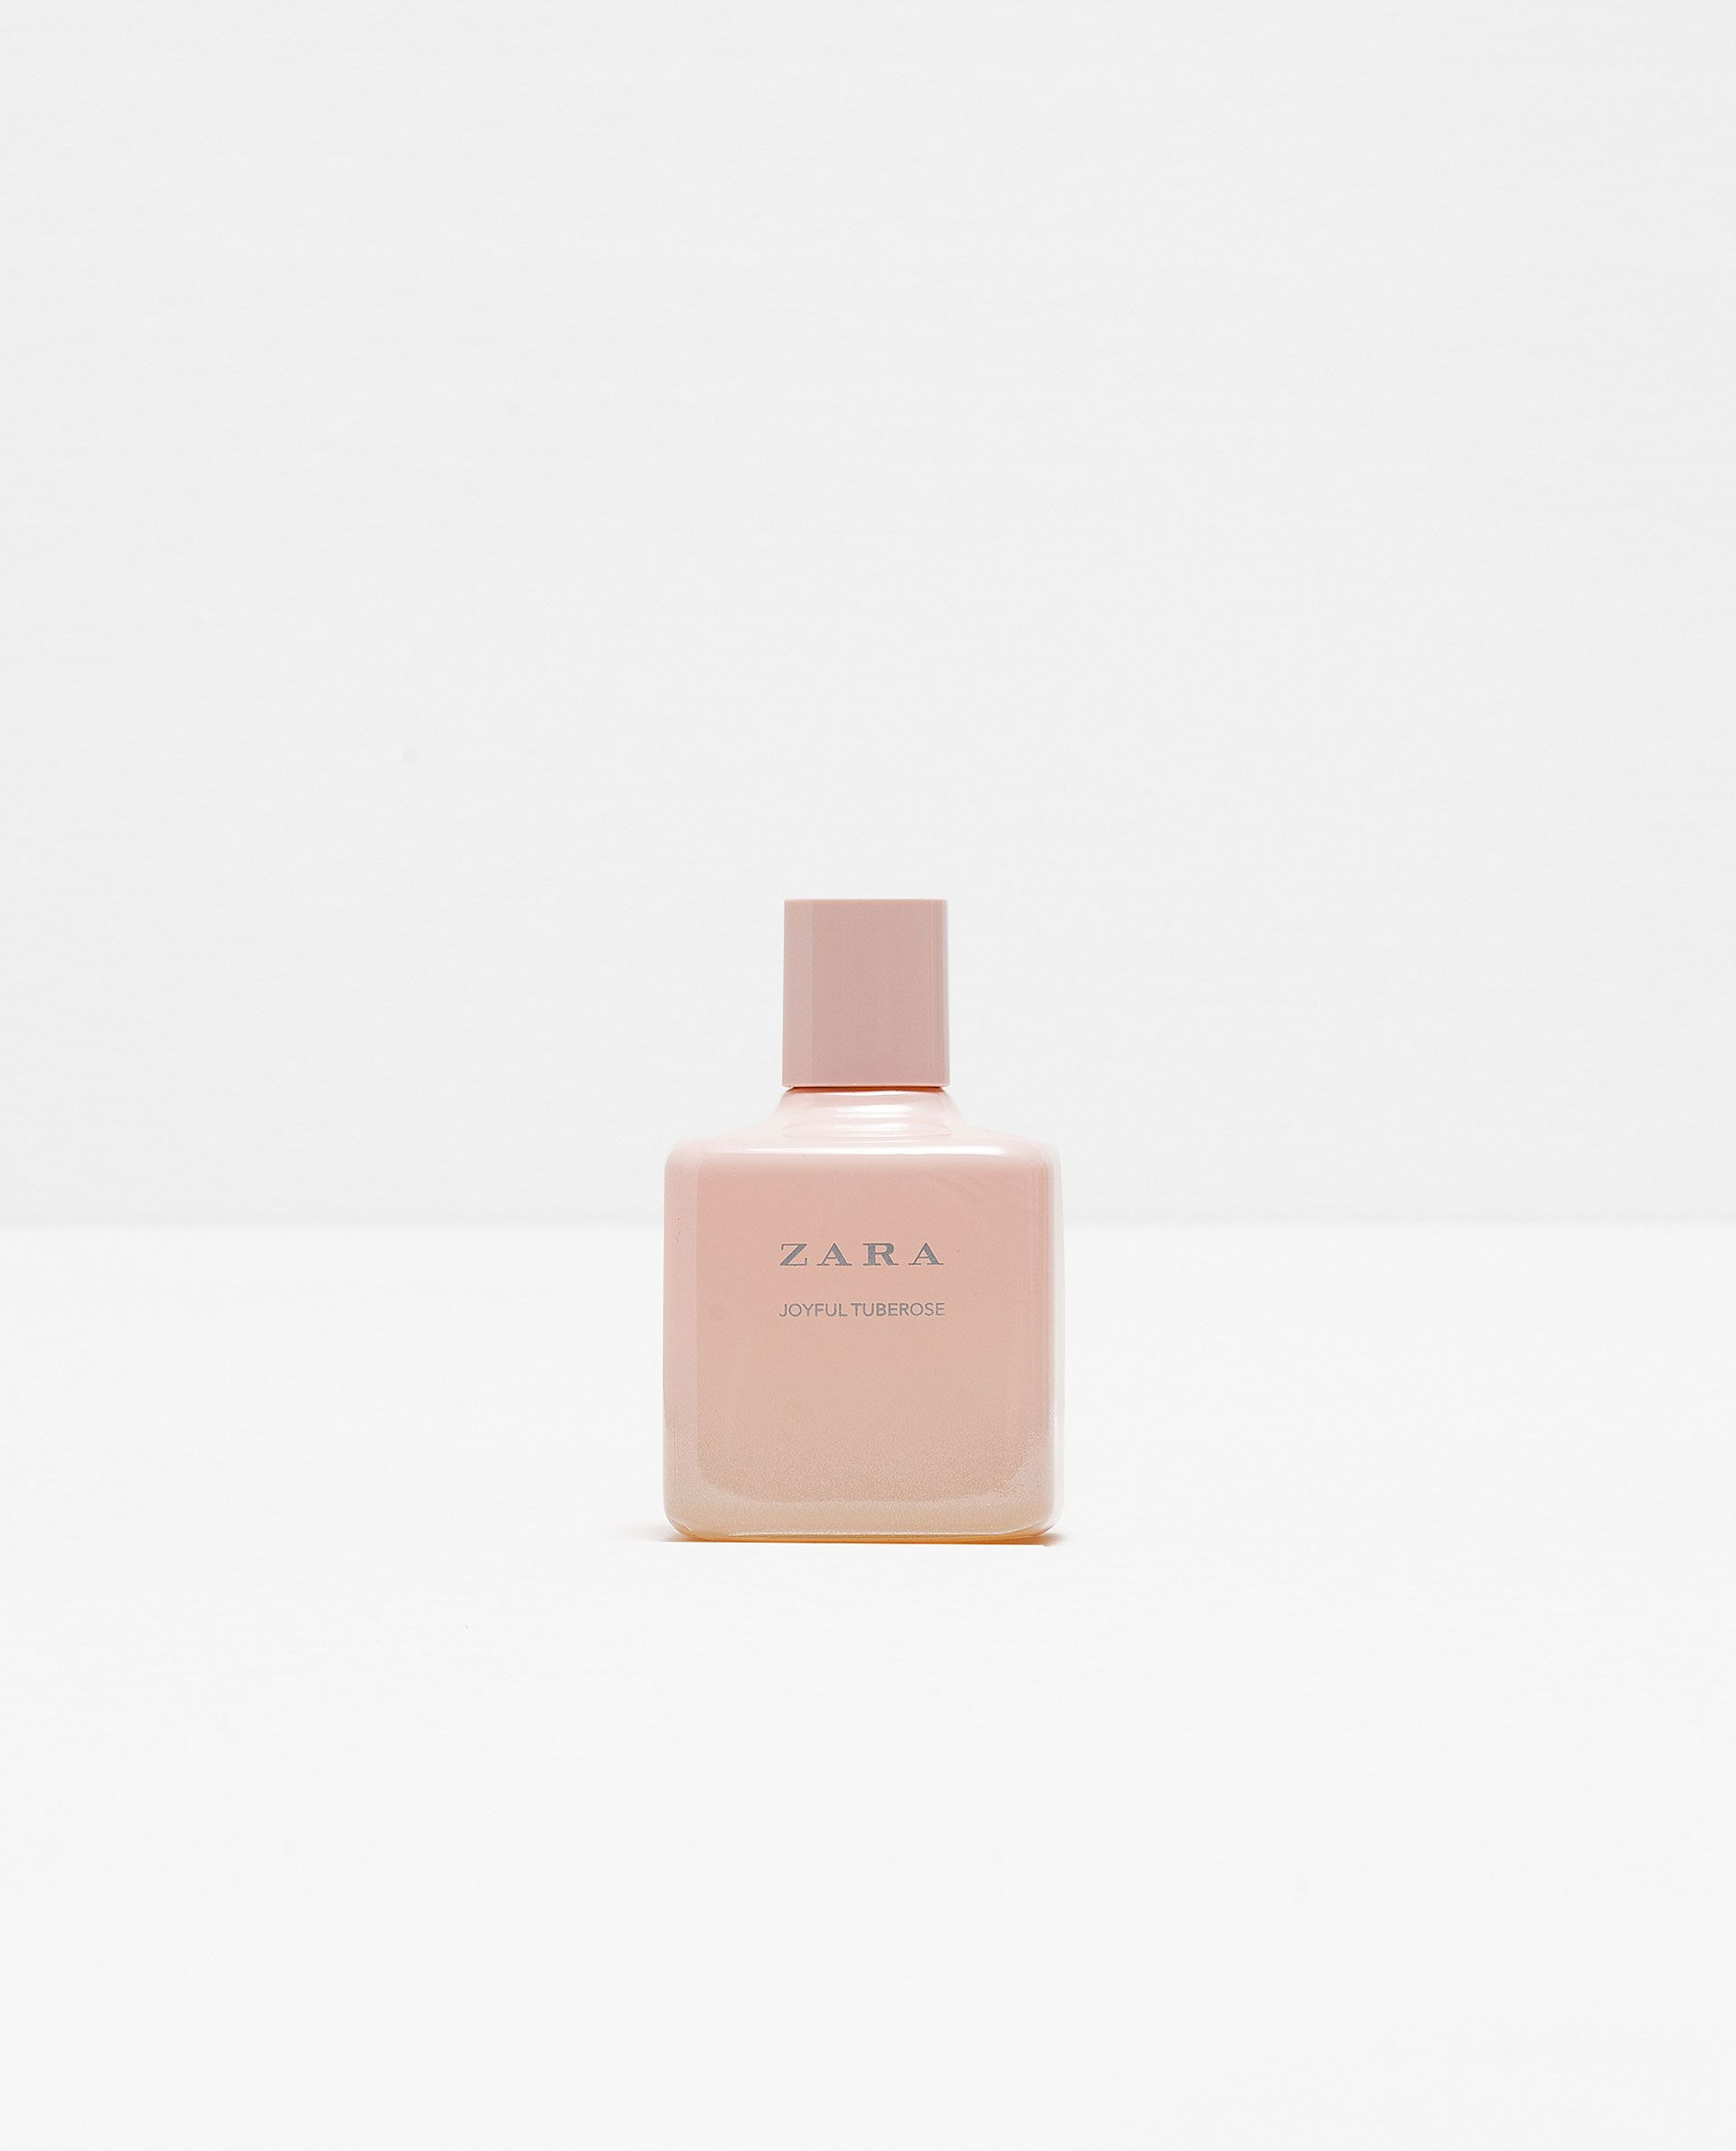 Zara Joyful Tuberose Eau De Toilette 100 Ml Beauty Perfume Zara